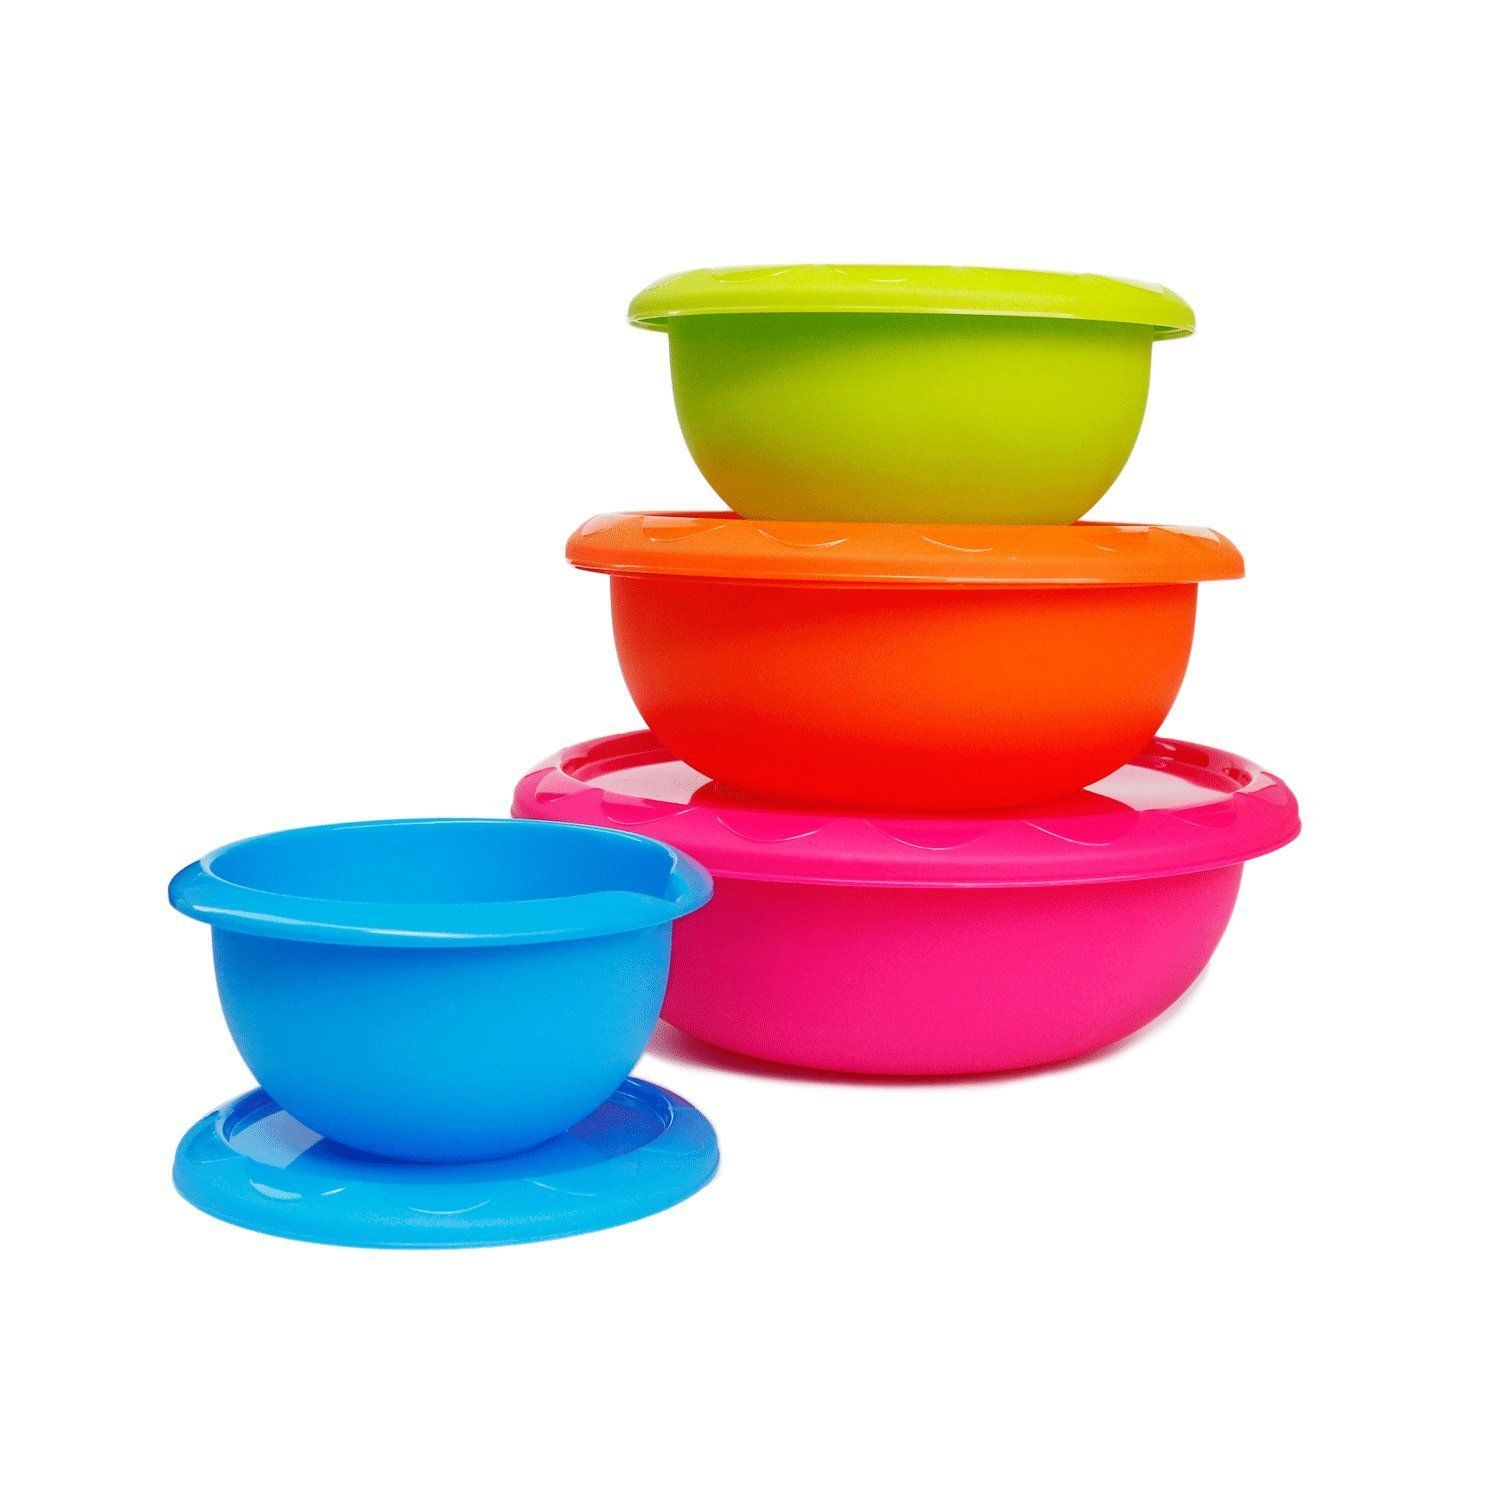 Honla Plastic Mixing Bowls With Lids Pour Spoutandcurved Lip 1 2 3 And 5 Quart Set Of 4 Blue Lime Green Orange Plastic Mixing Bowls Mixing Bowls Baking Storage